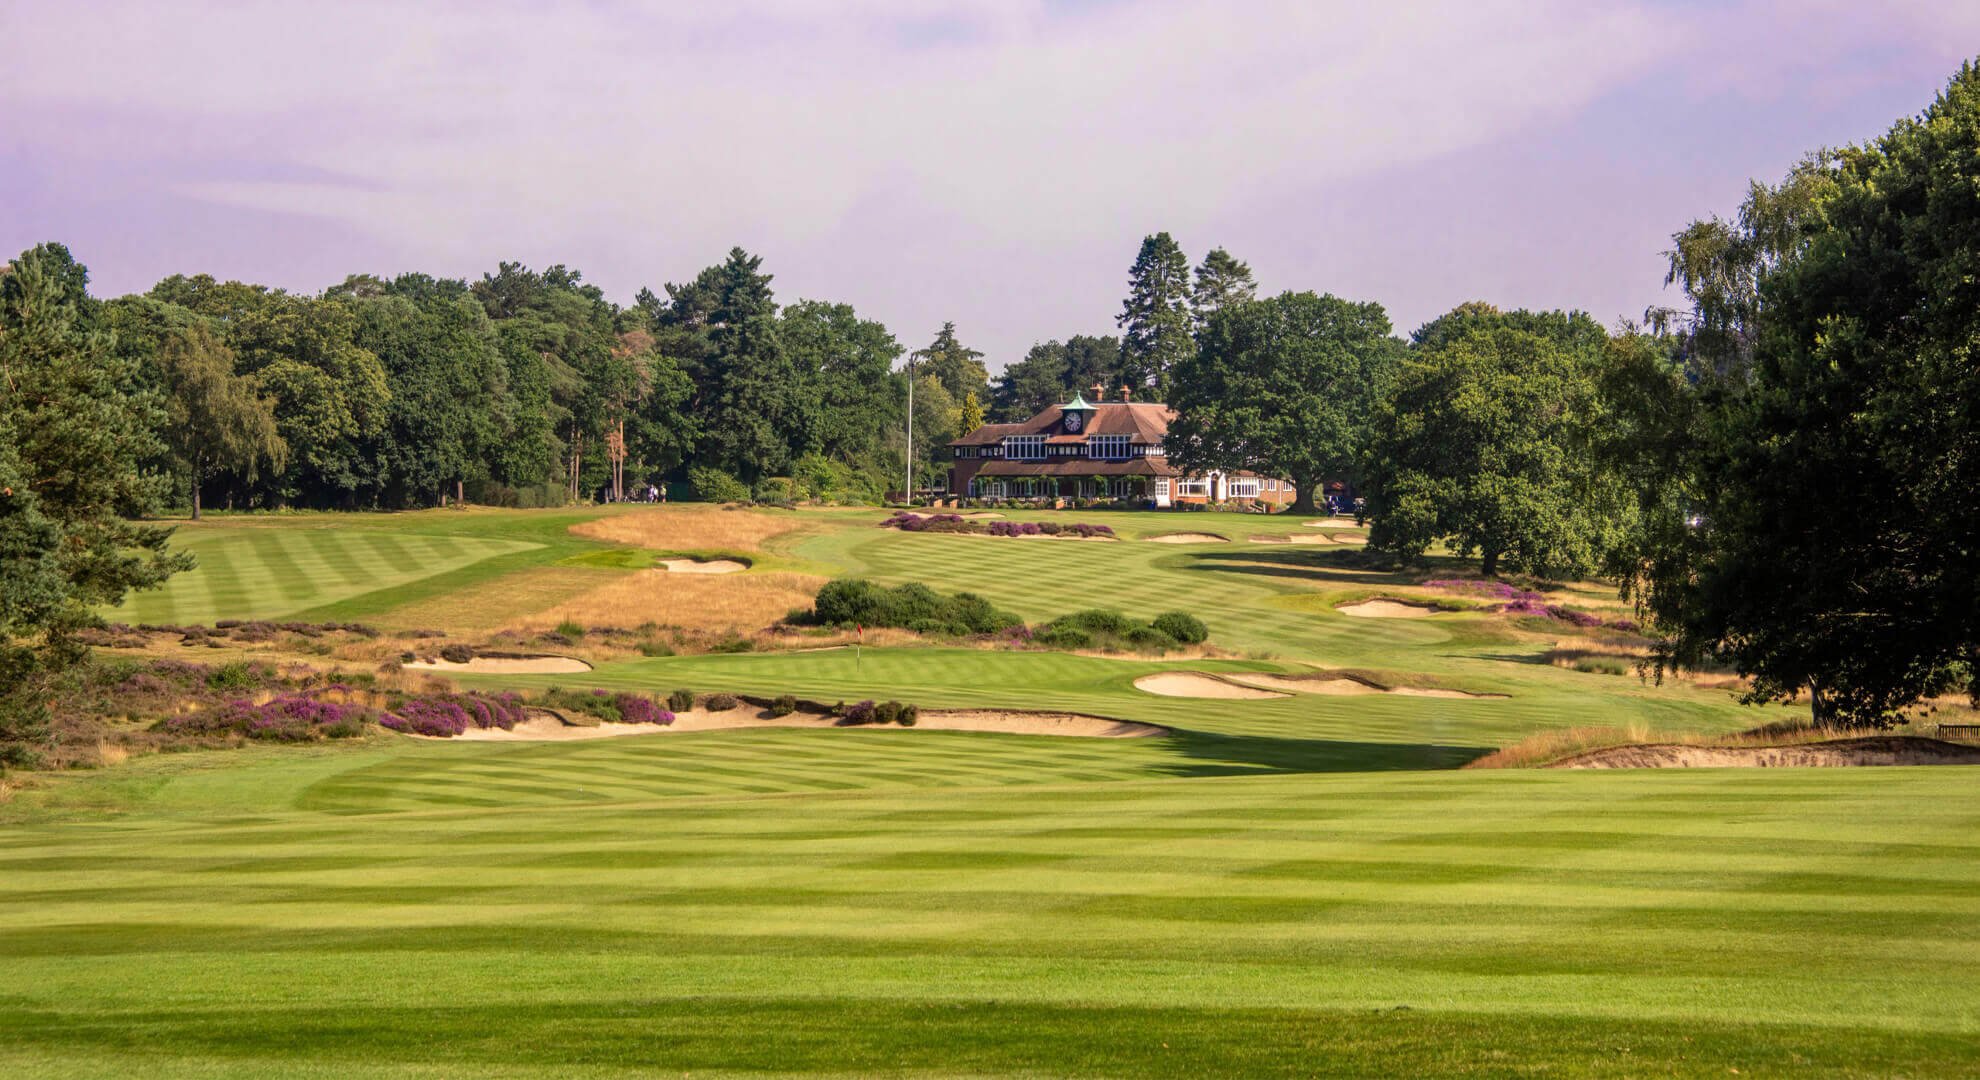 Sunningdale Old Golf Course, South East England